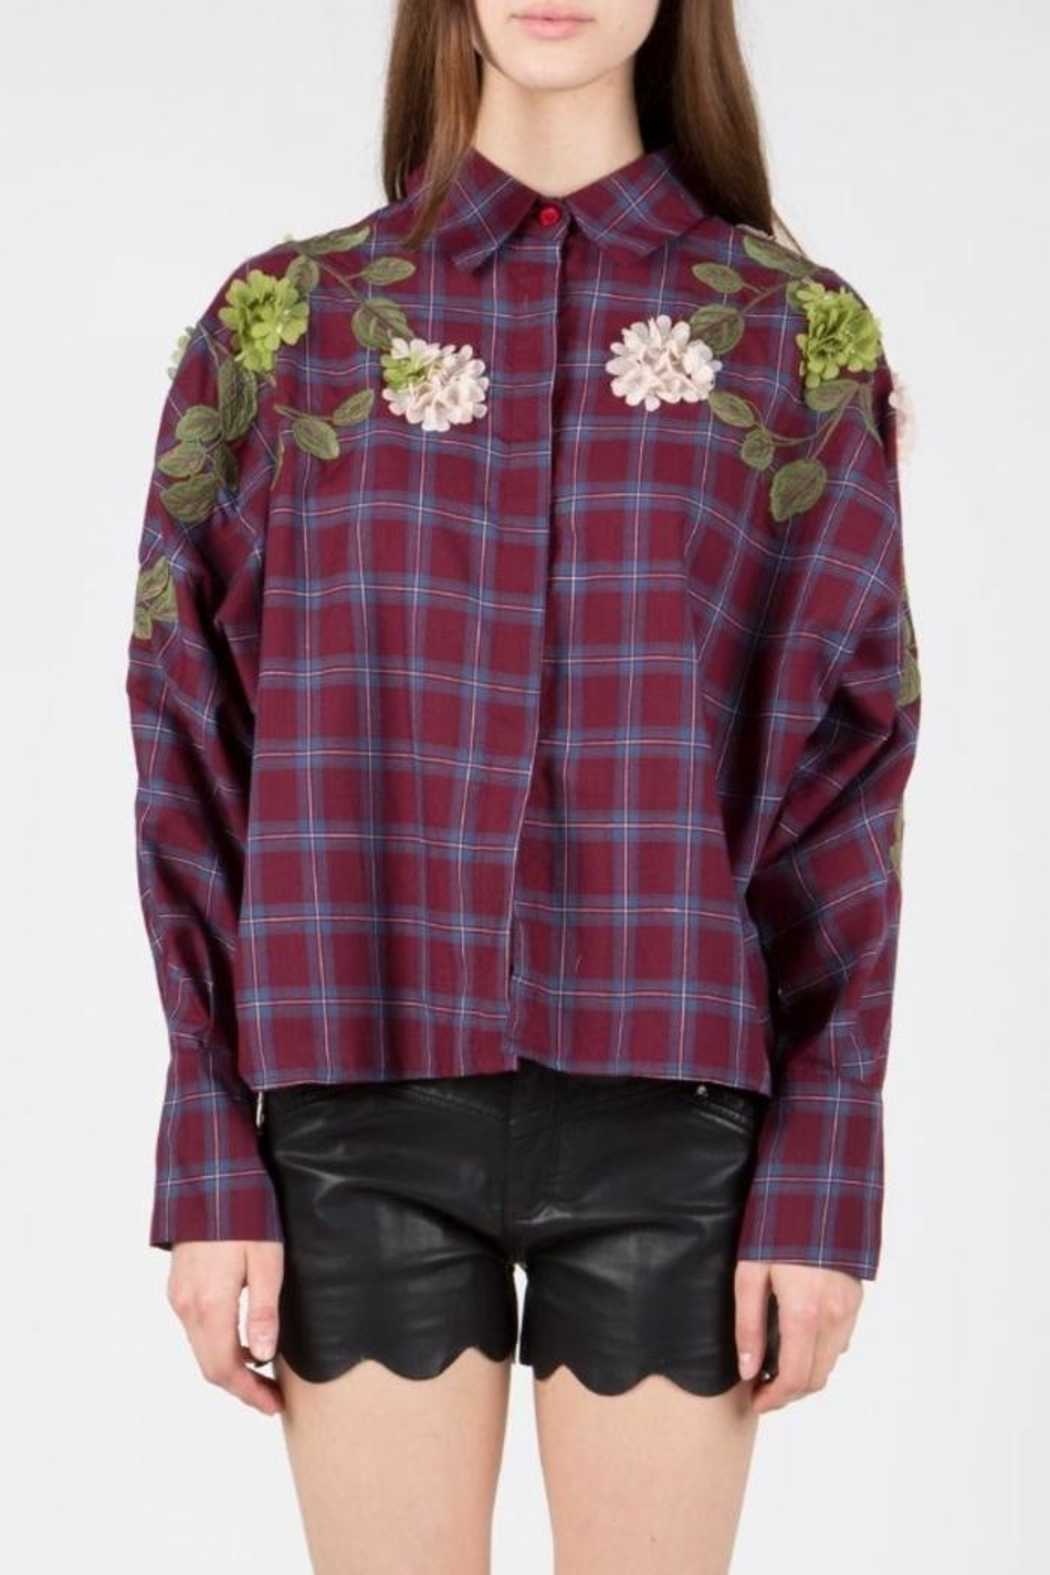 BEULAH STYLE Embellished Patch Blouse - Front Full Image